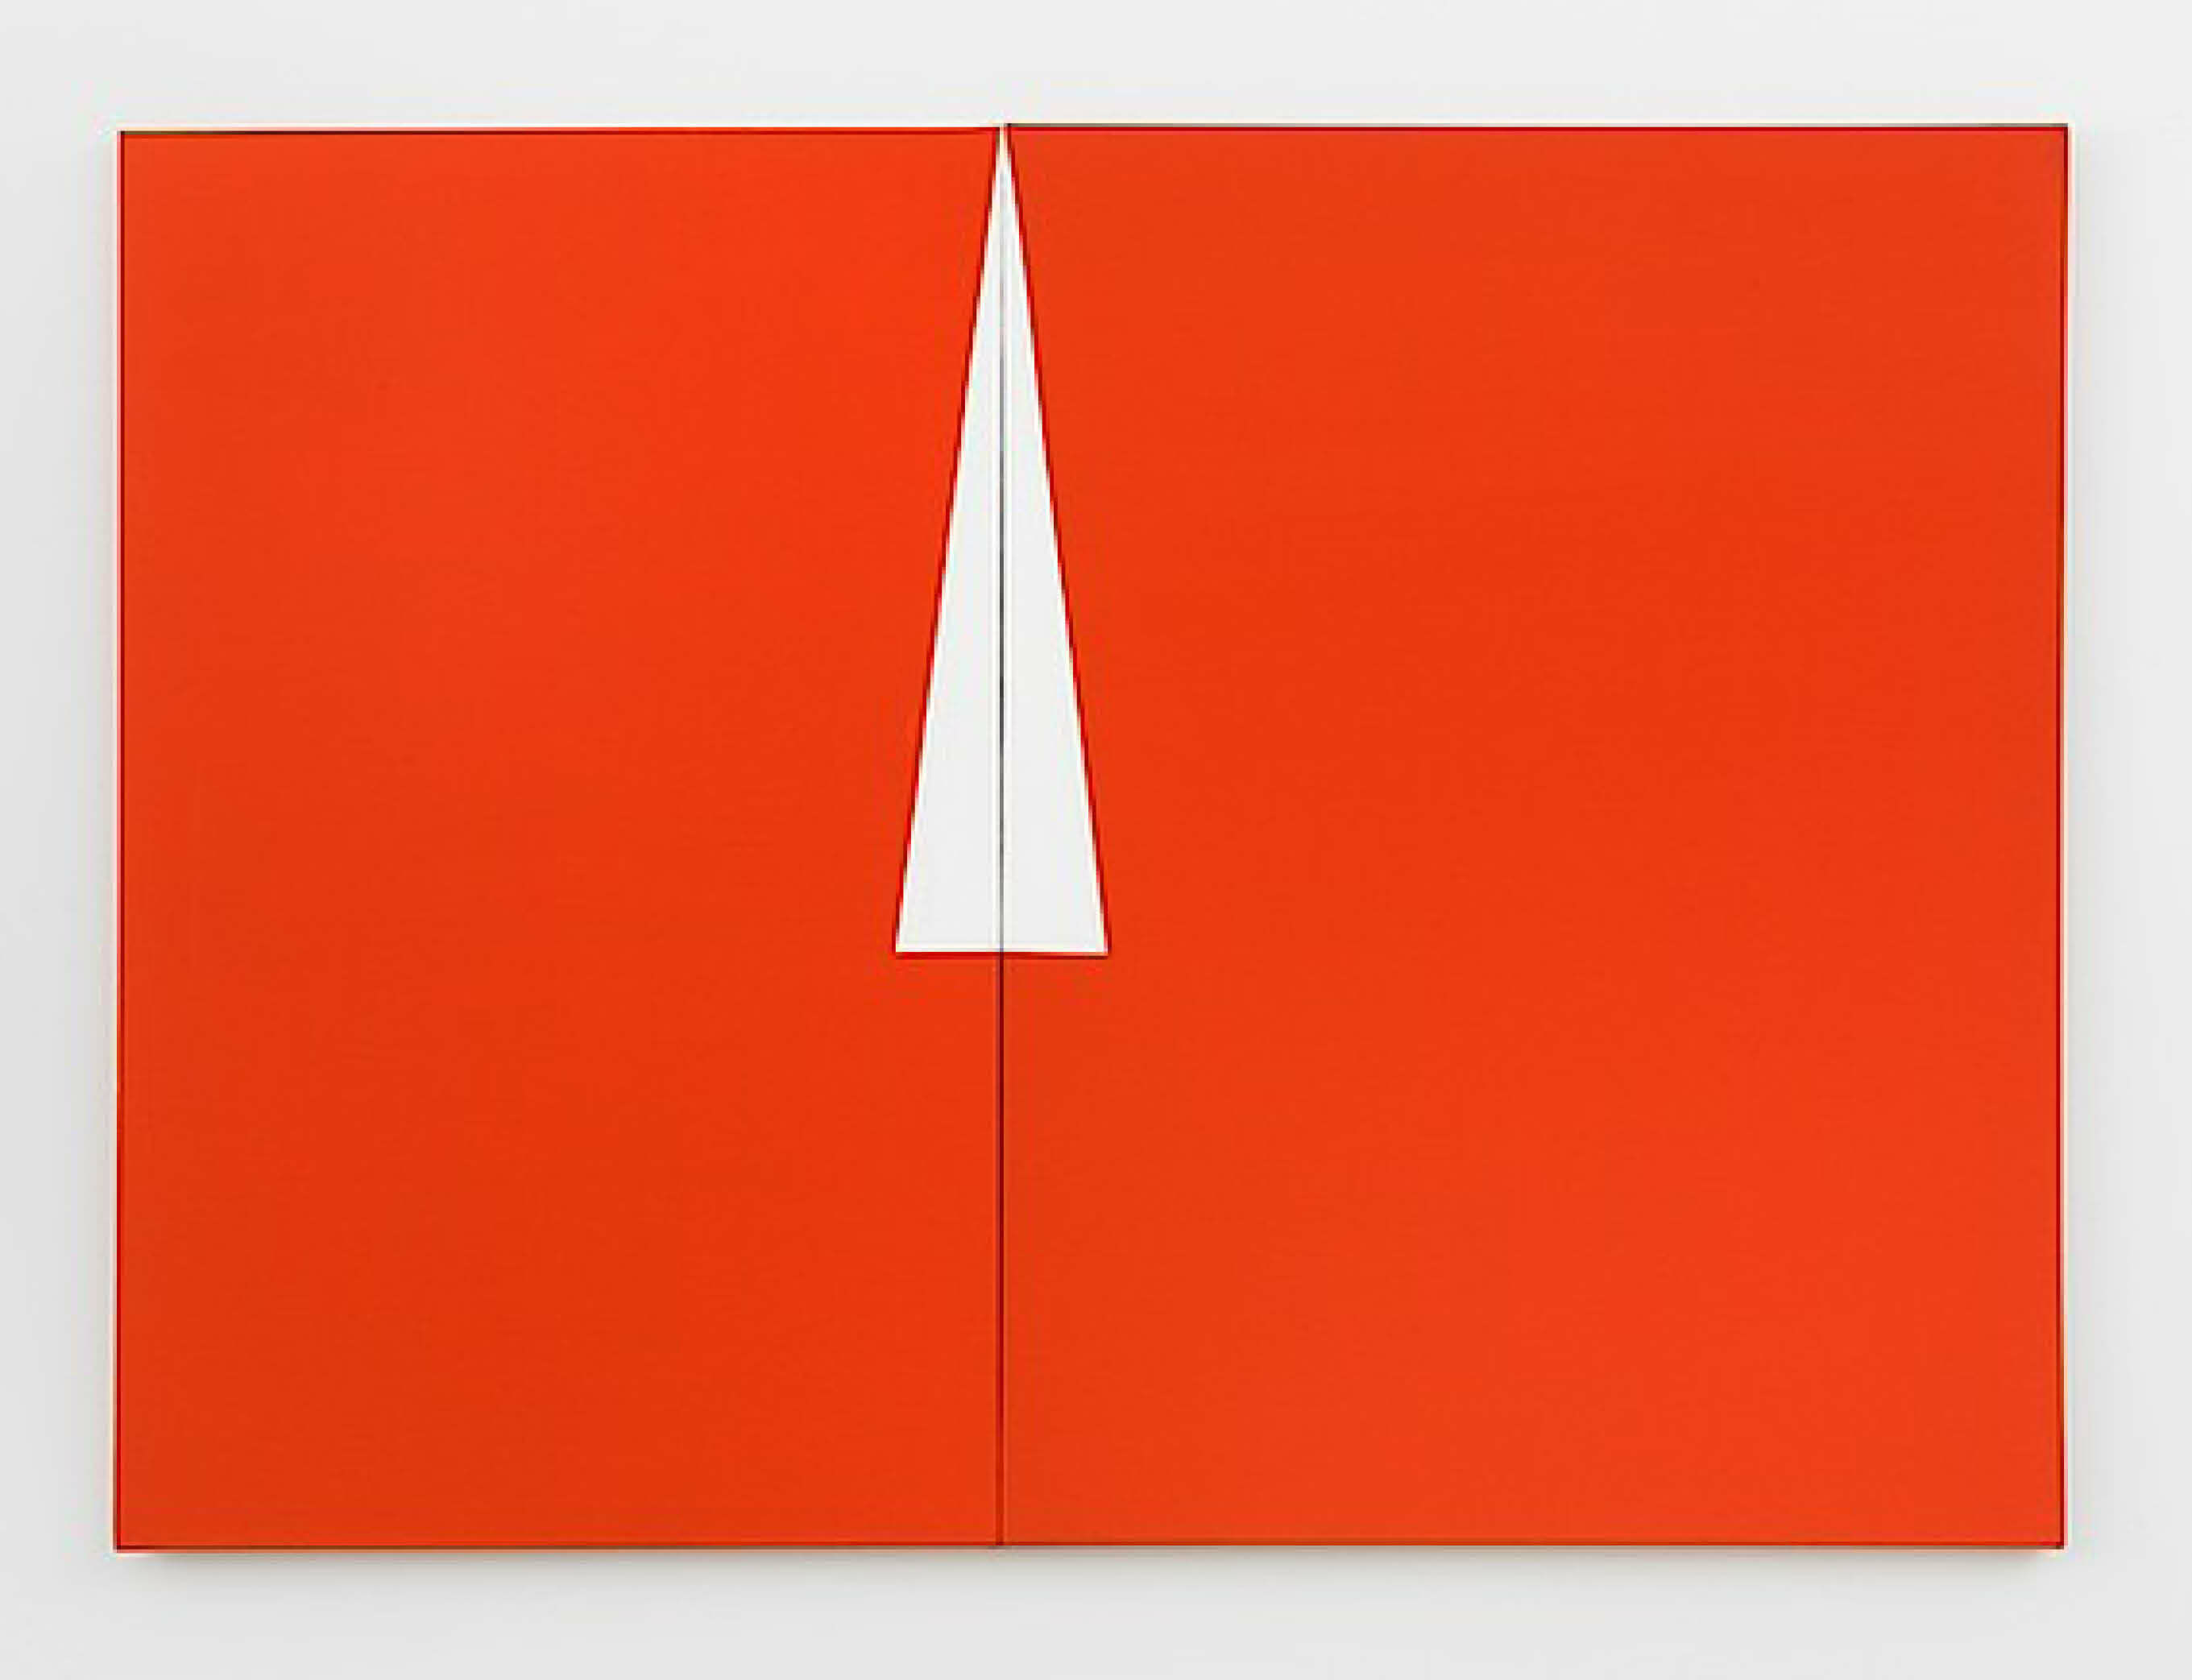 Carmen Herrera's 'Lines of Sight' travels to K20 in Düsseldorf, Germany